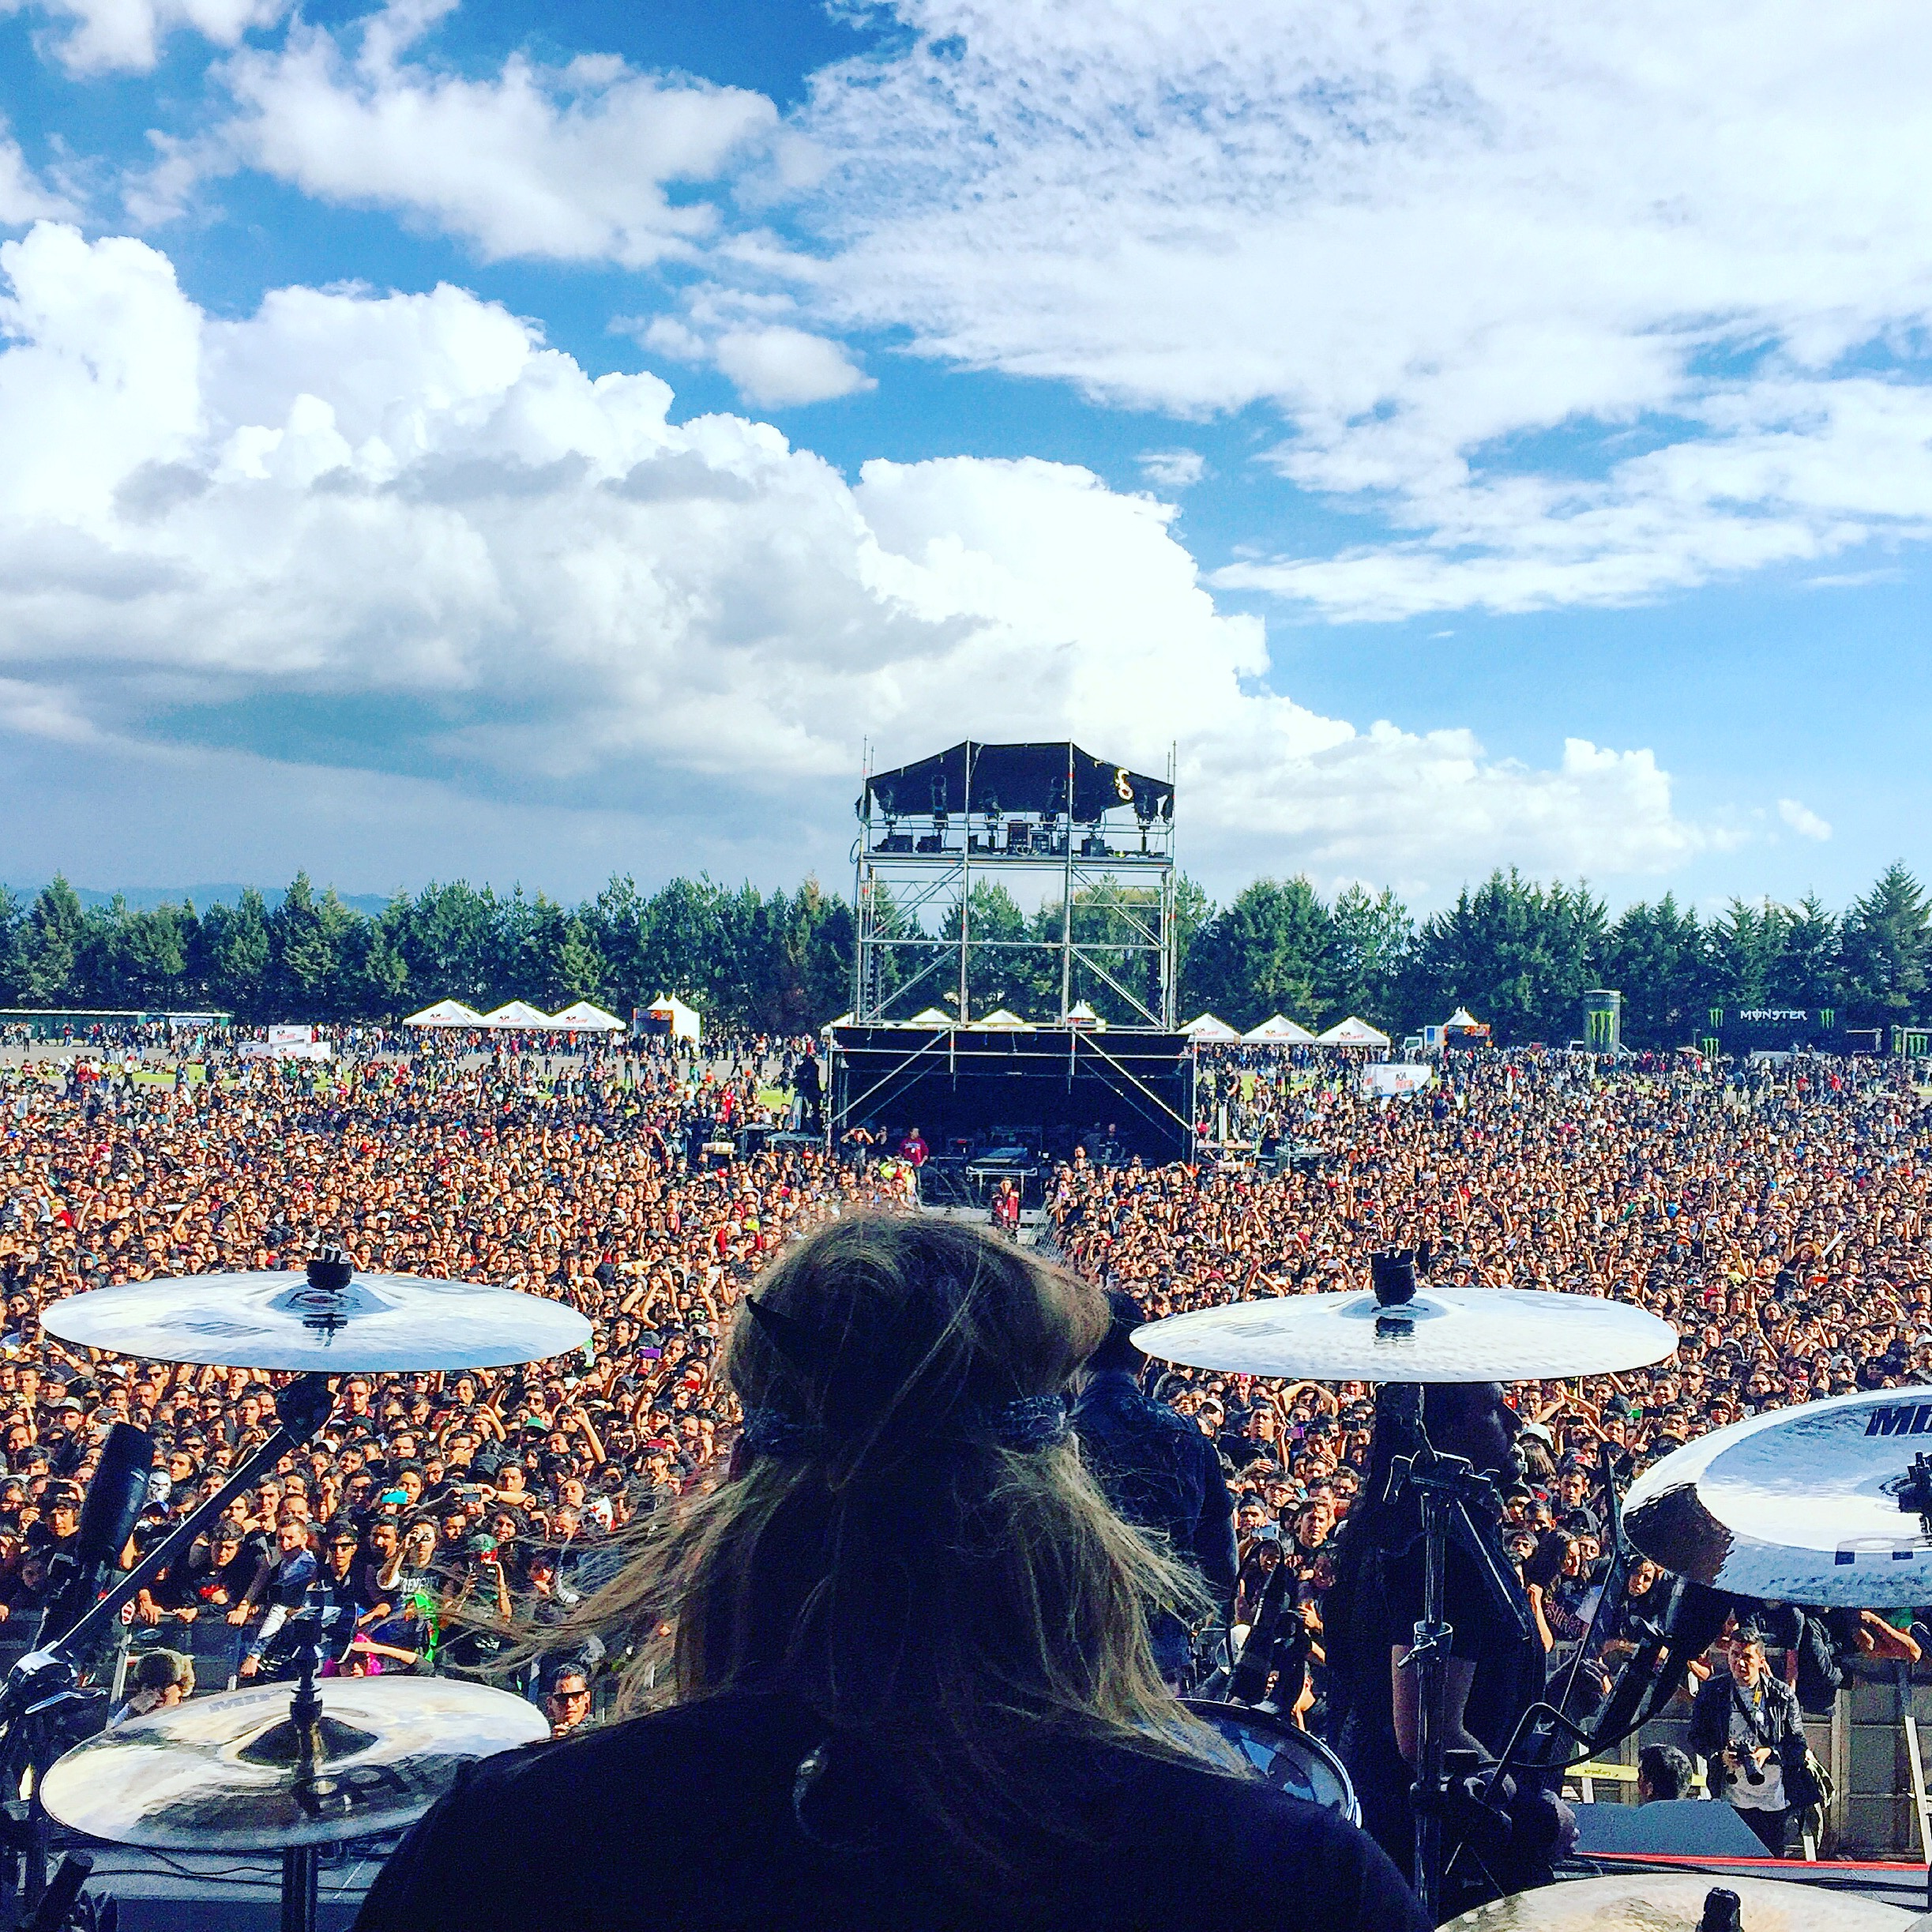 Trivium drummer Paul Wantdke's view as he looks out over a crowd of 40K+ plus metal heads at the Knotfest in Mexico. December 5th, 2015.